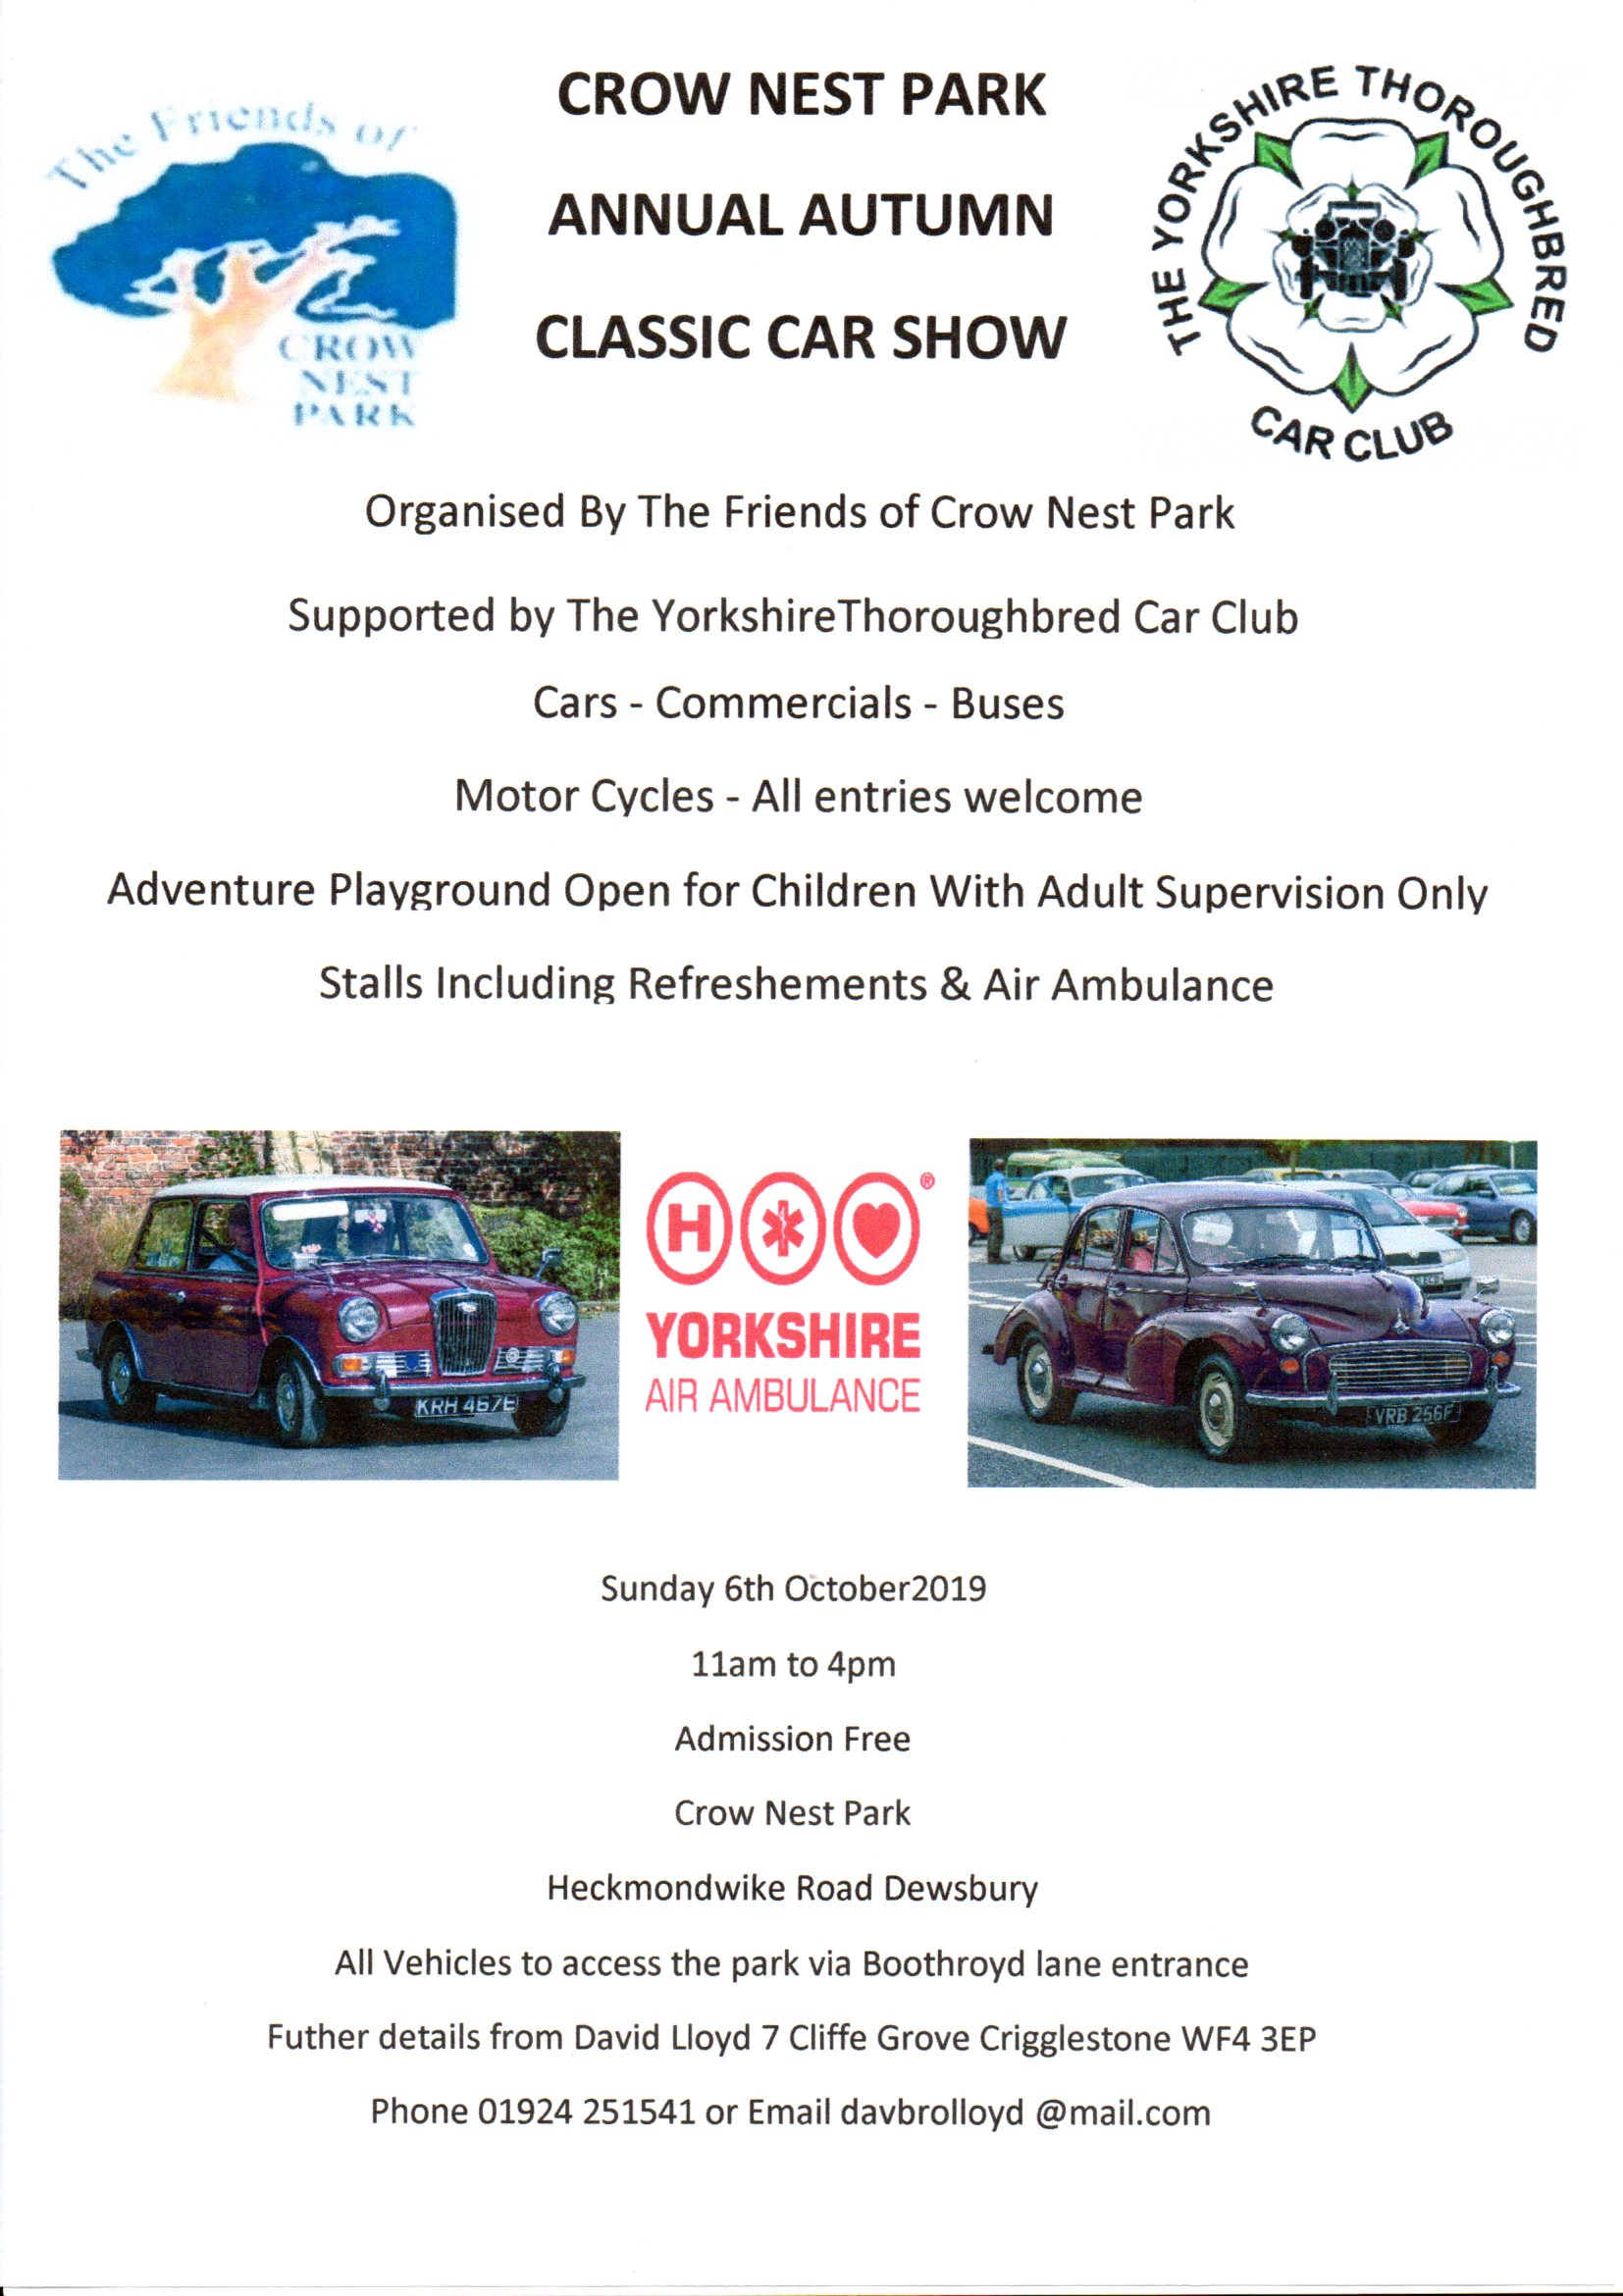 Crow Nest Park Annual Autumn Classic Car Show